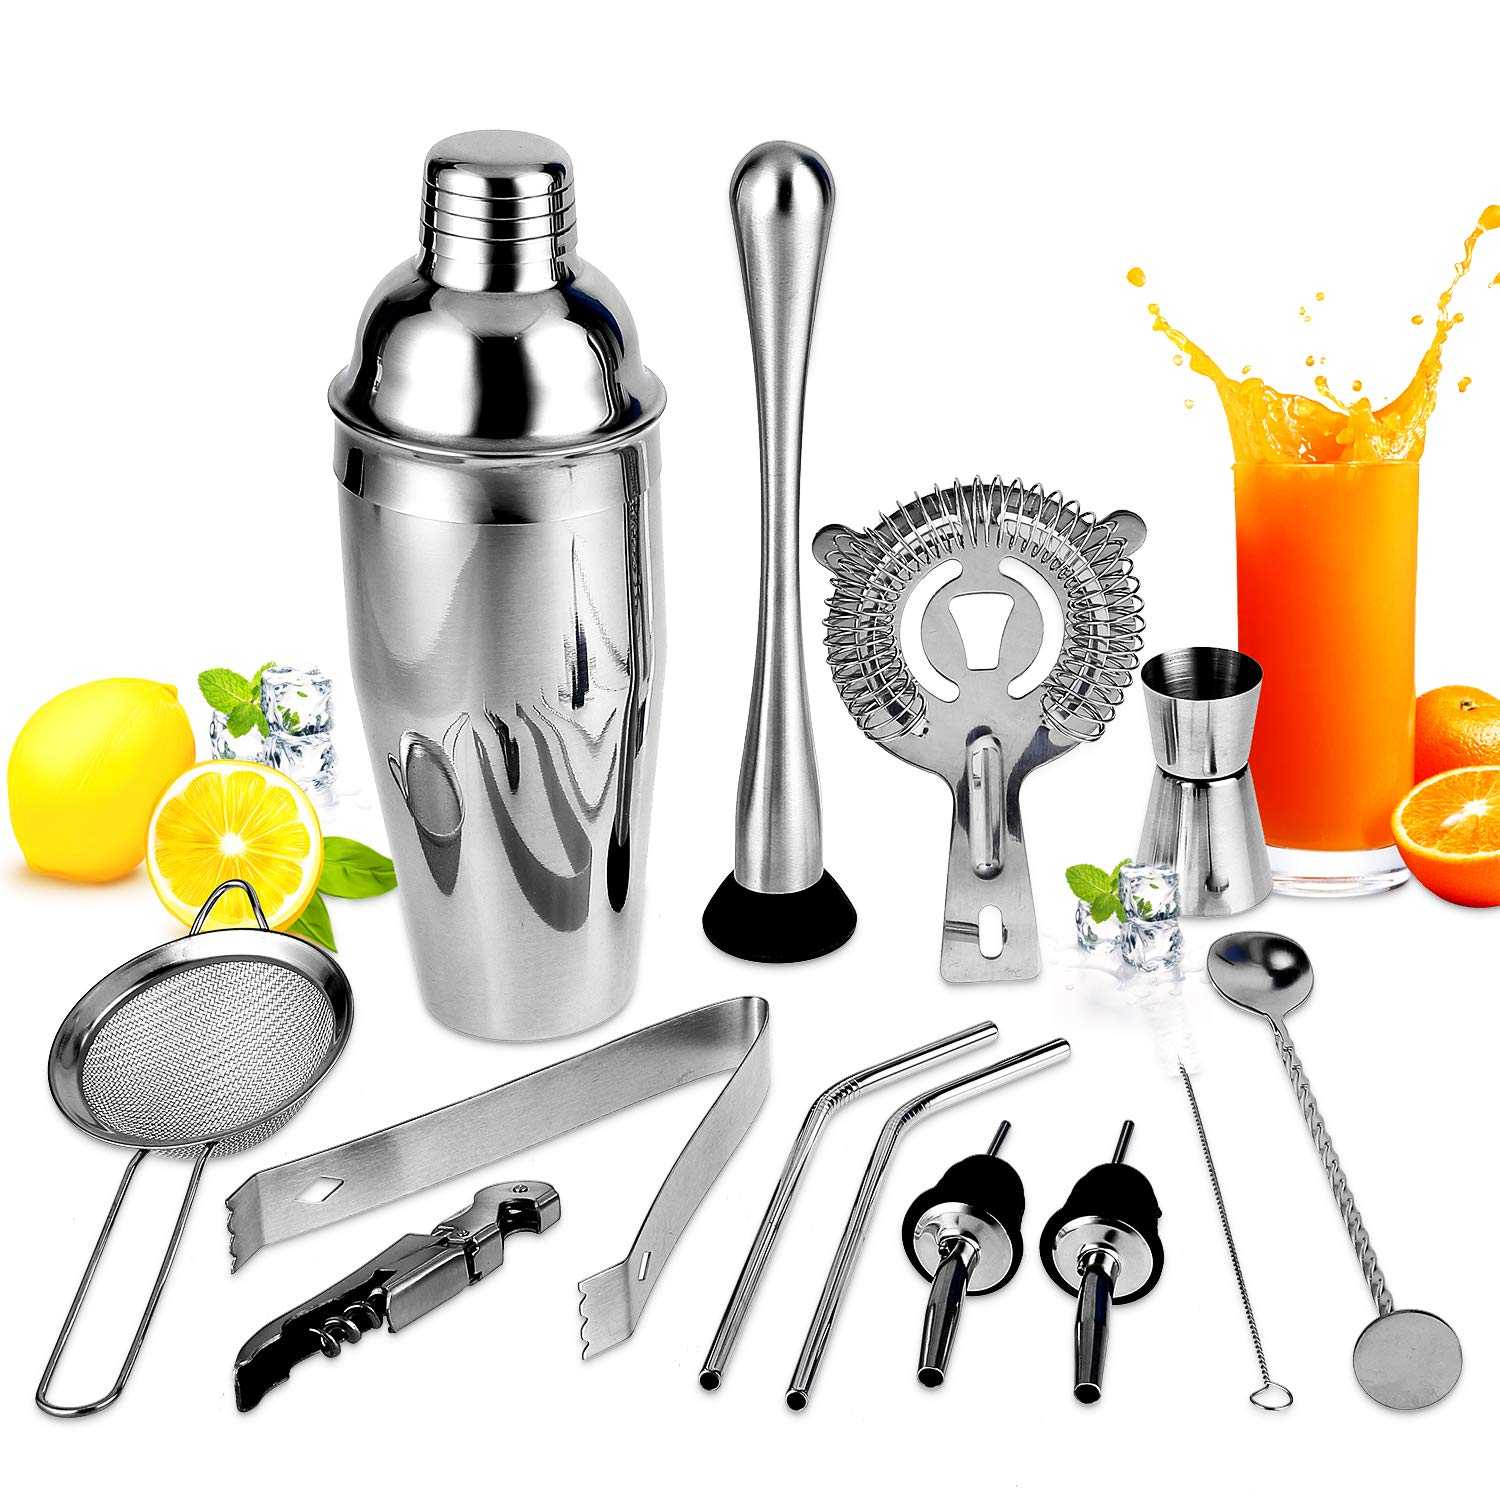 Cocktail Set,Cocktail Making Set 13Pcs, Cocktail Shaker Set,Bartending Kit Stainless Steel Cocktail Bar Tools,Large Drink Mixer Kits,Perfect Home Bartending Kit(750ML)